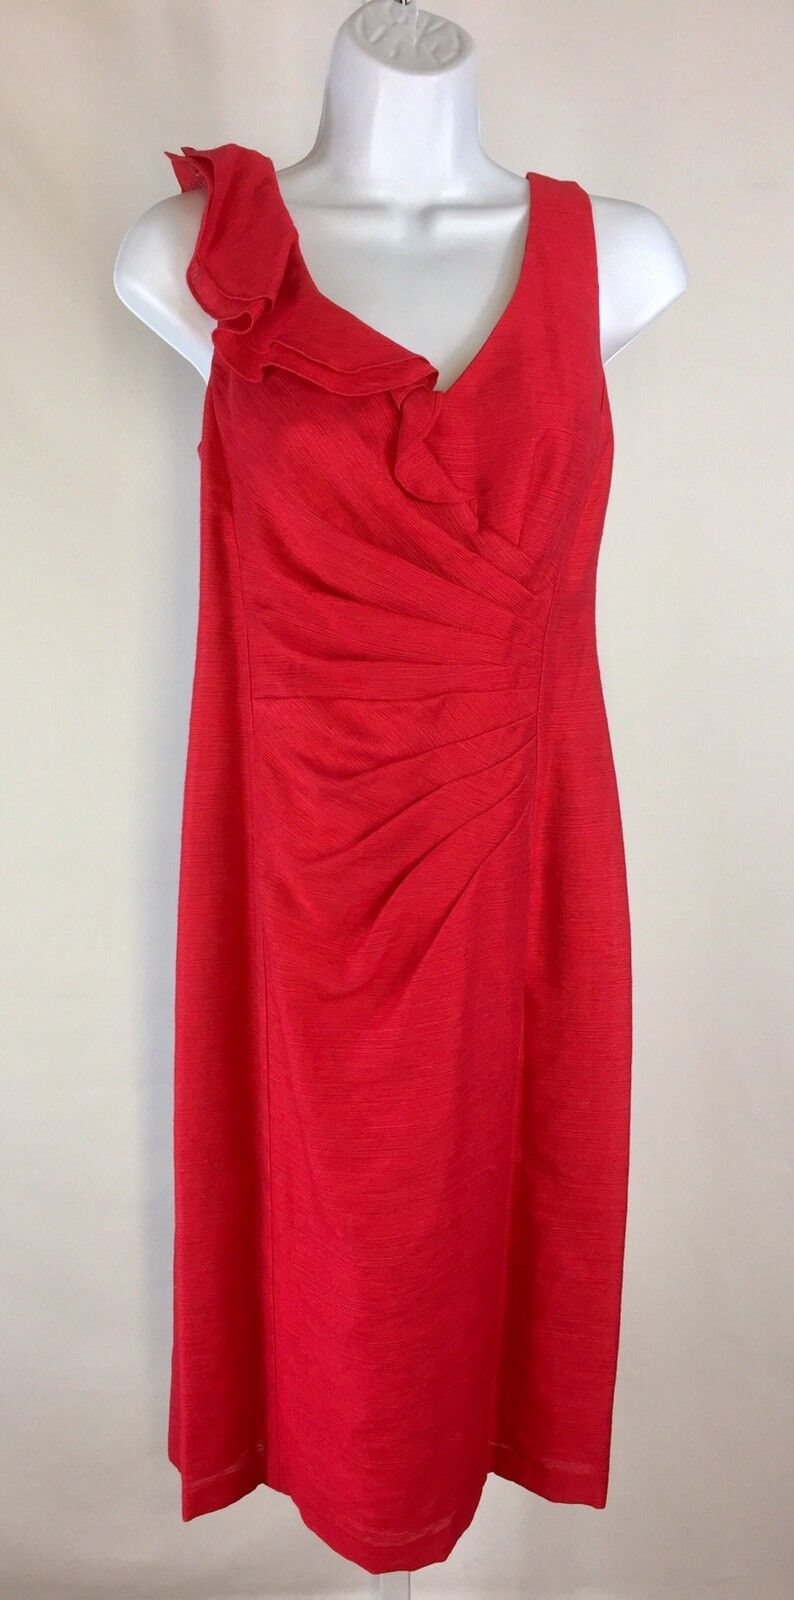 Nanette Womens Dress Sleeveless Ruched Ruffle Size 6 Red Event Dressy Wedding